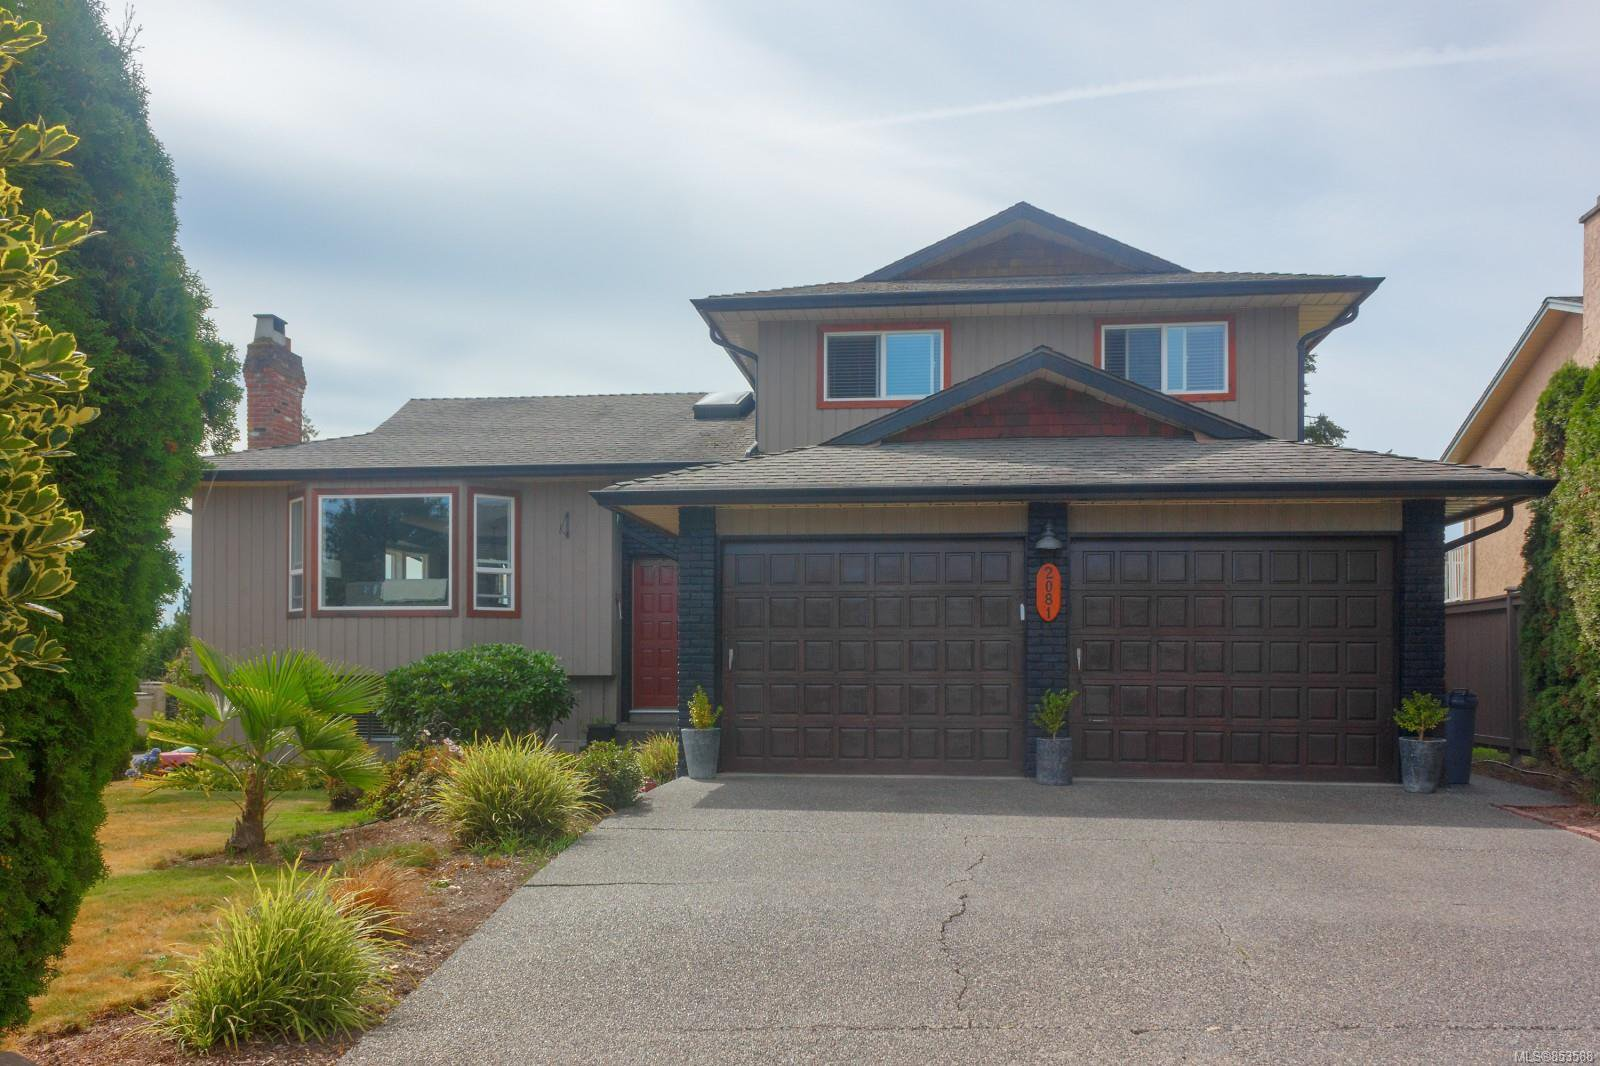 Main Photo: 2081 Skyline Cres in : CS Keating Single Family Detached for sale (Central Saanich)  : MLS®# 853588